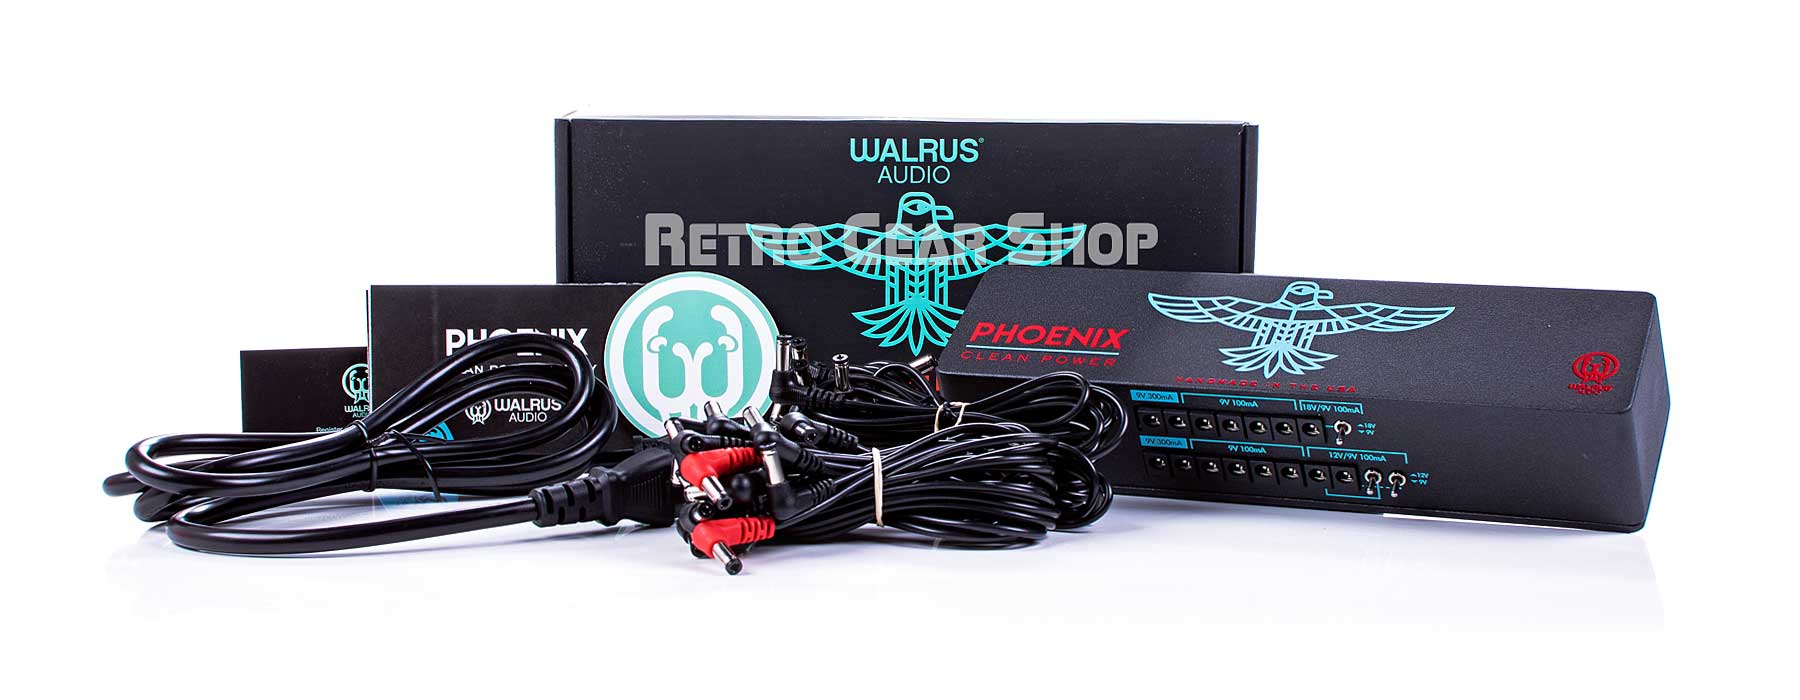 Walrus Audio Phoenix 15-output 120V USA Power Supply Box Cables Extras